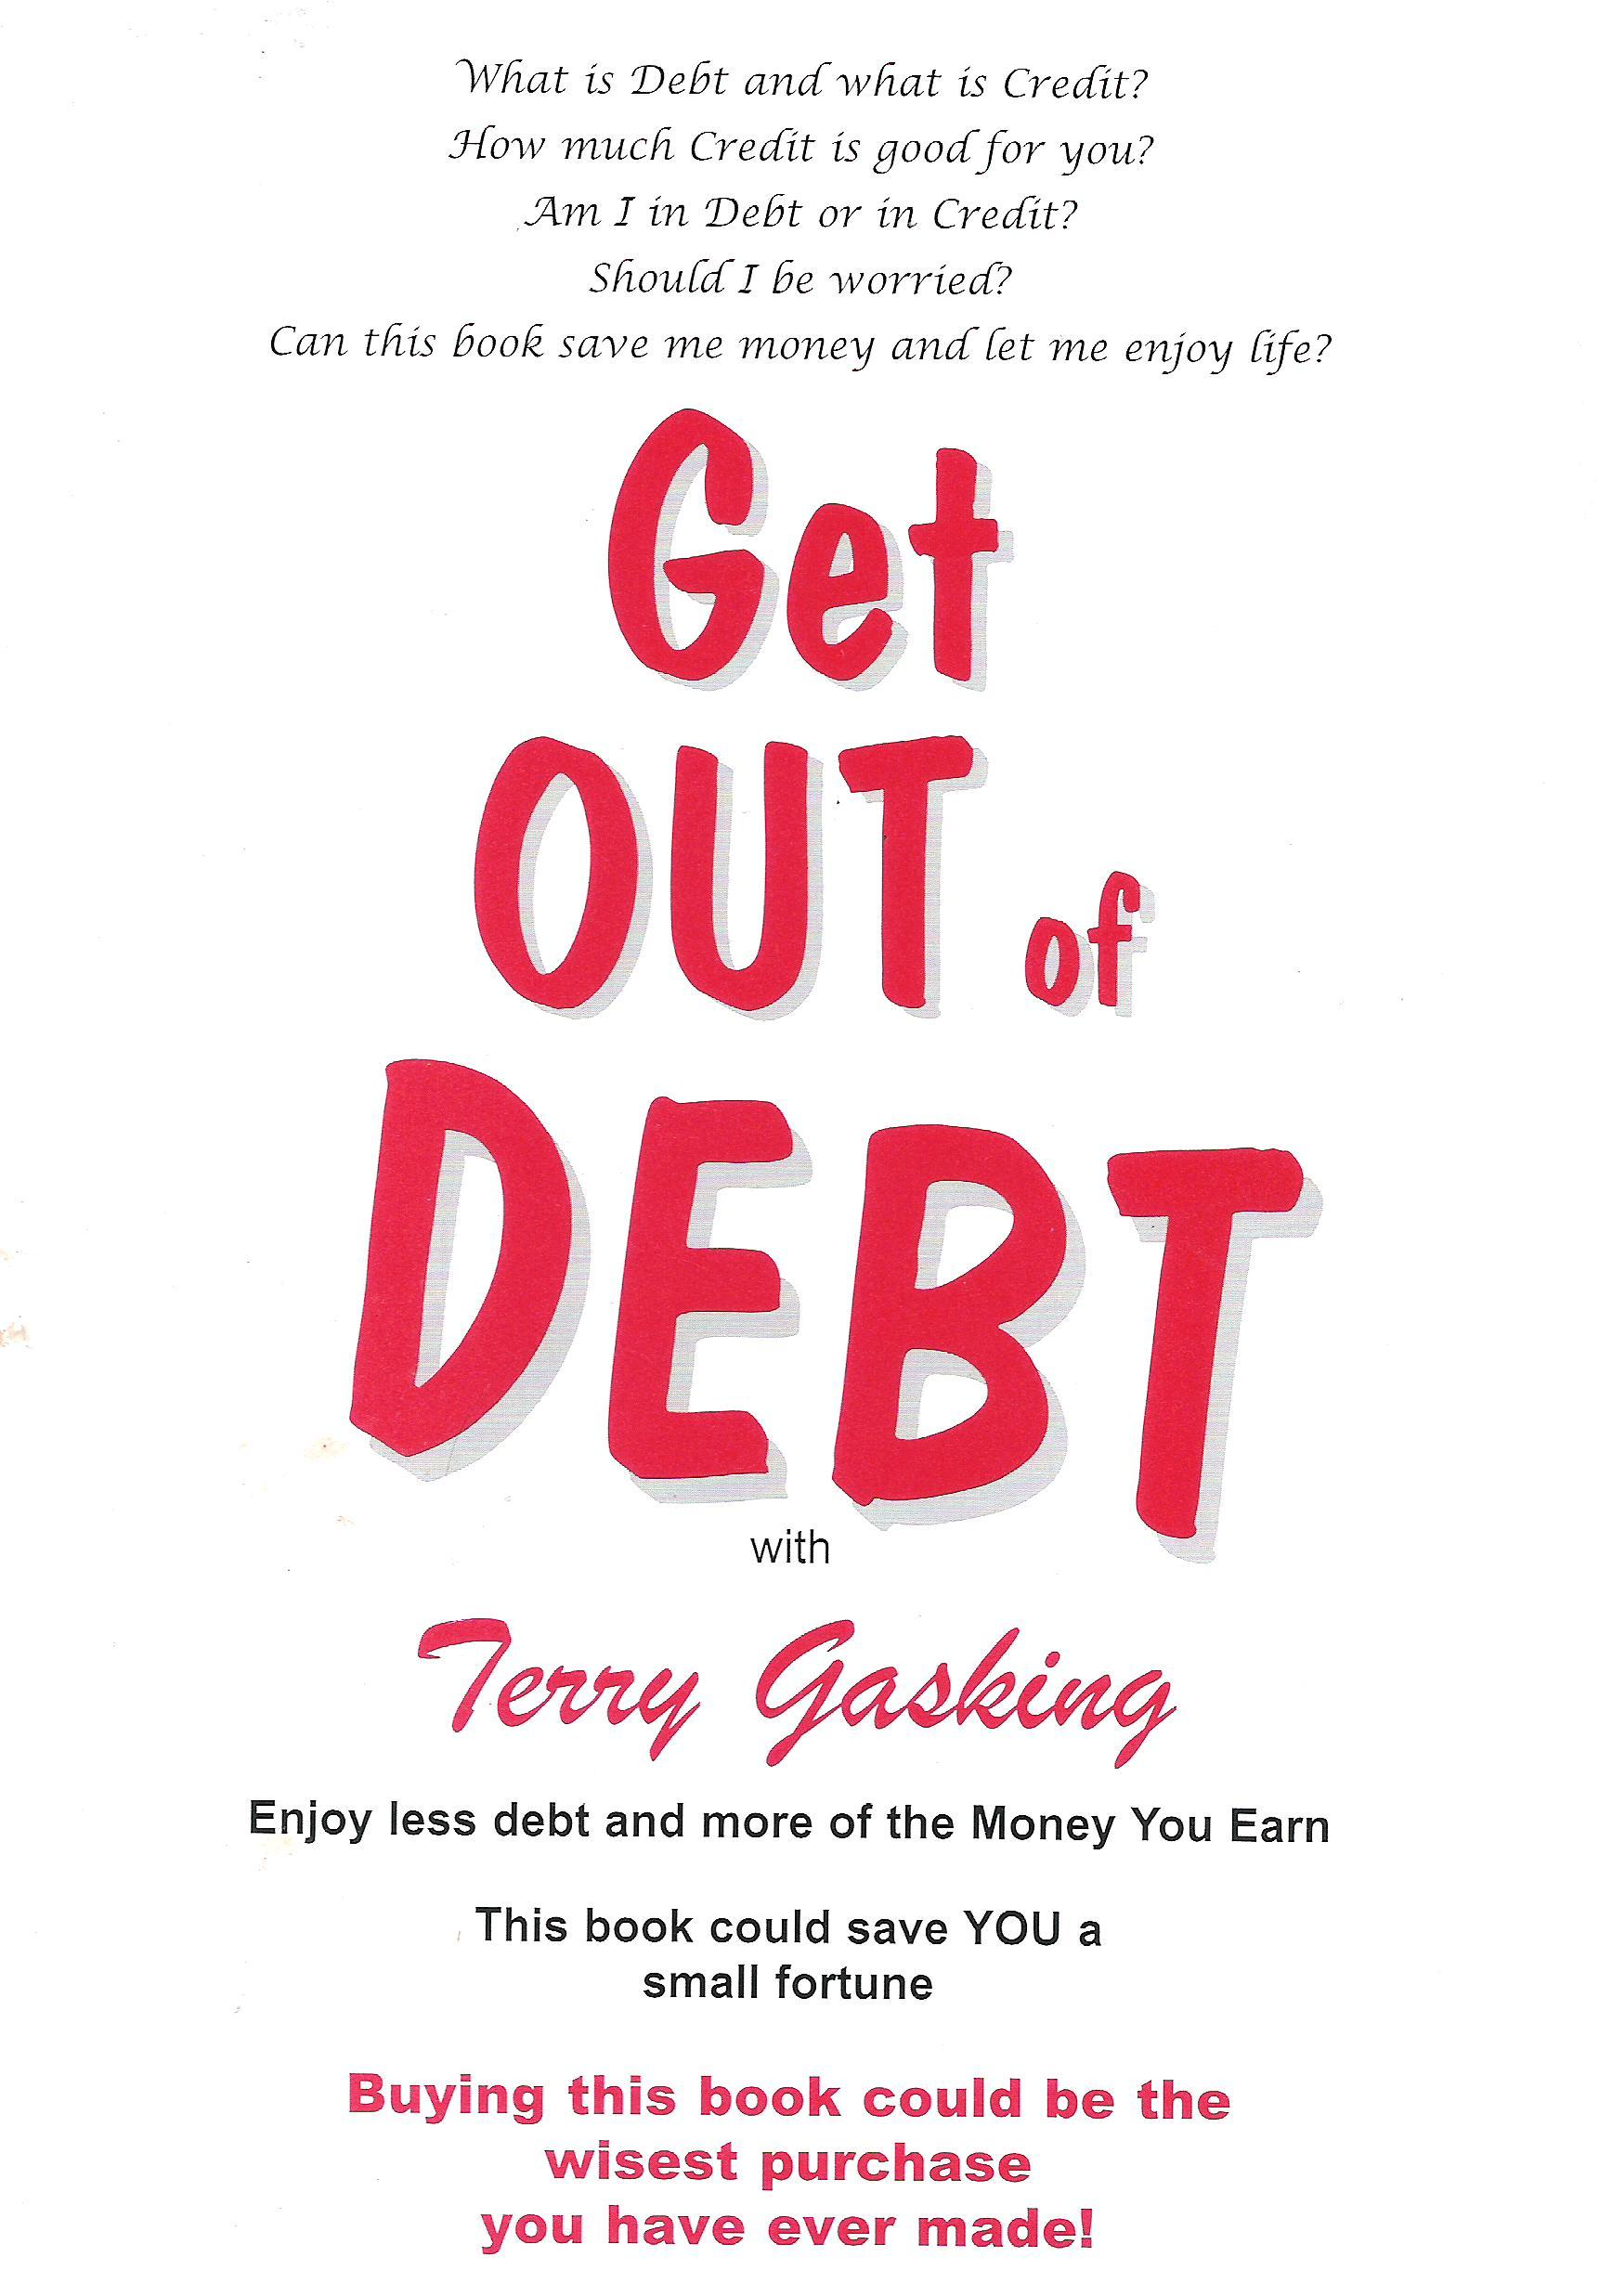 Get Out of DEBT with Terry Gasking